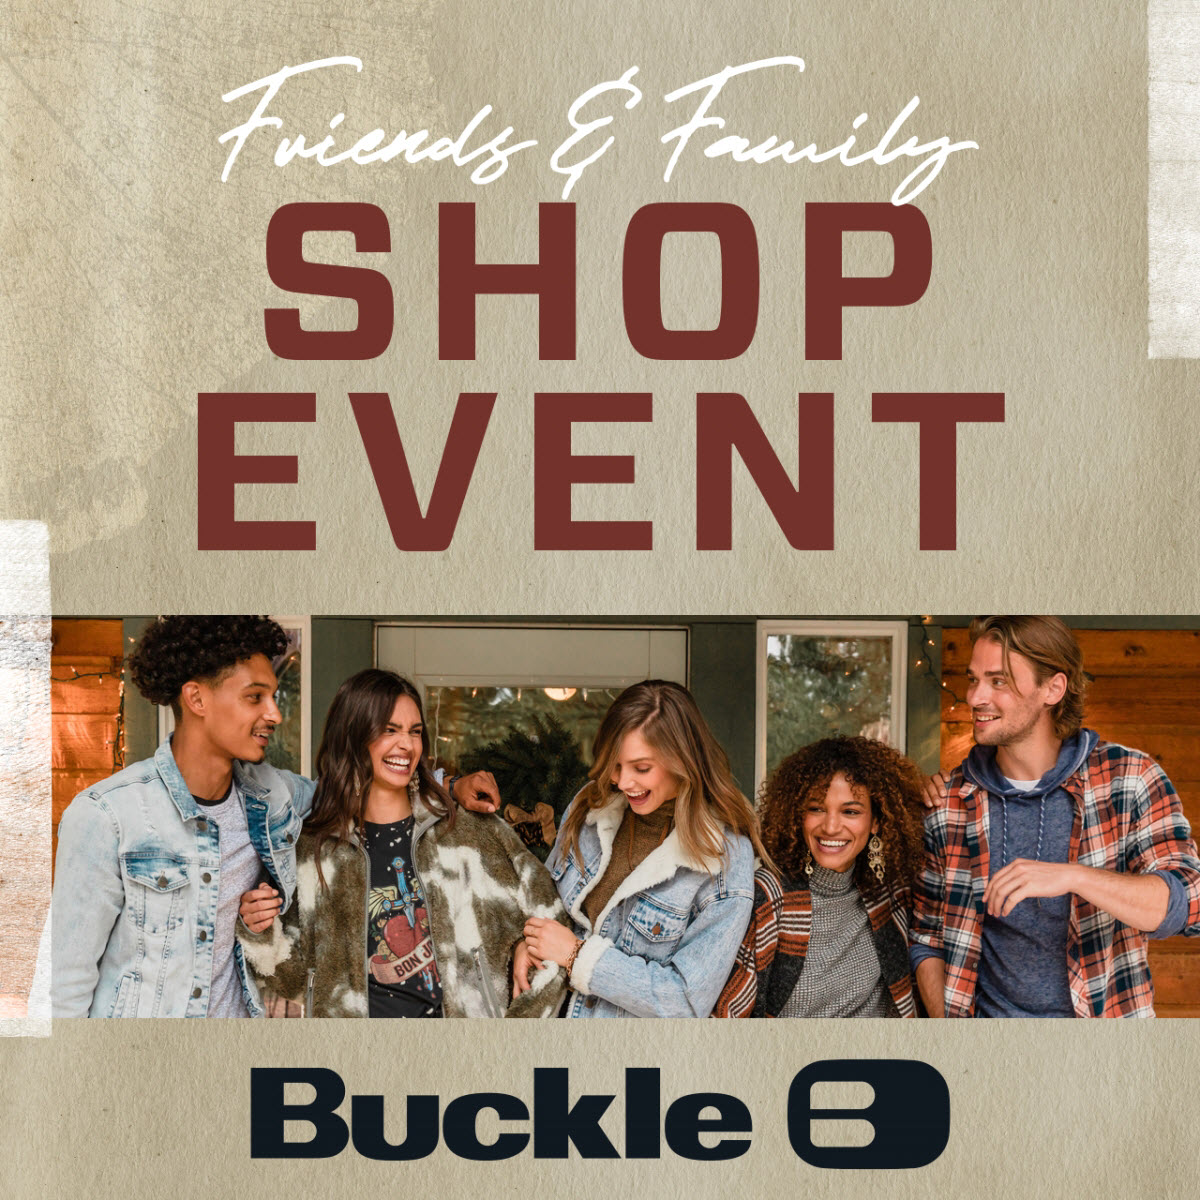 Friends and Family Shop Event from Buckle